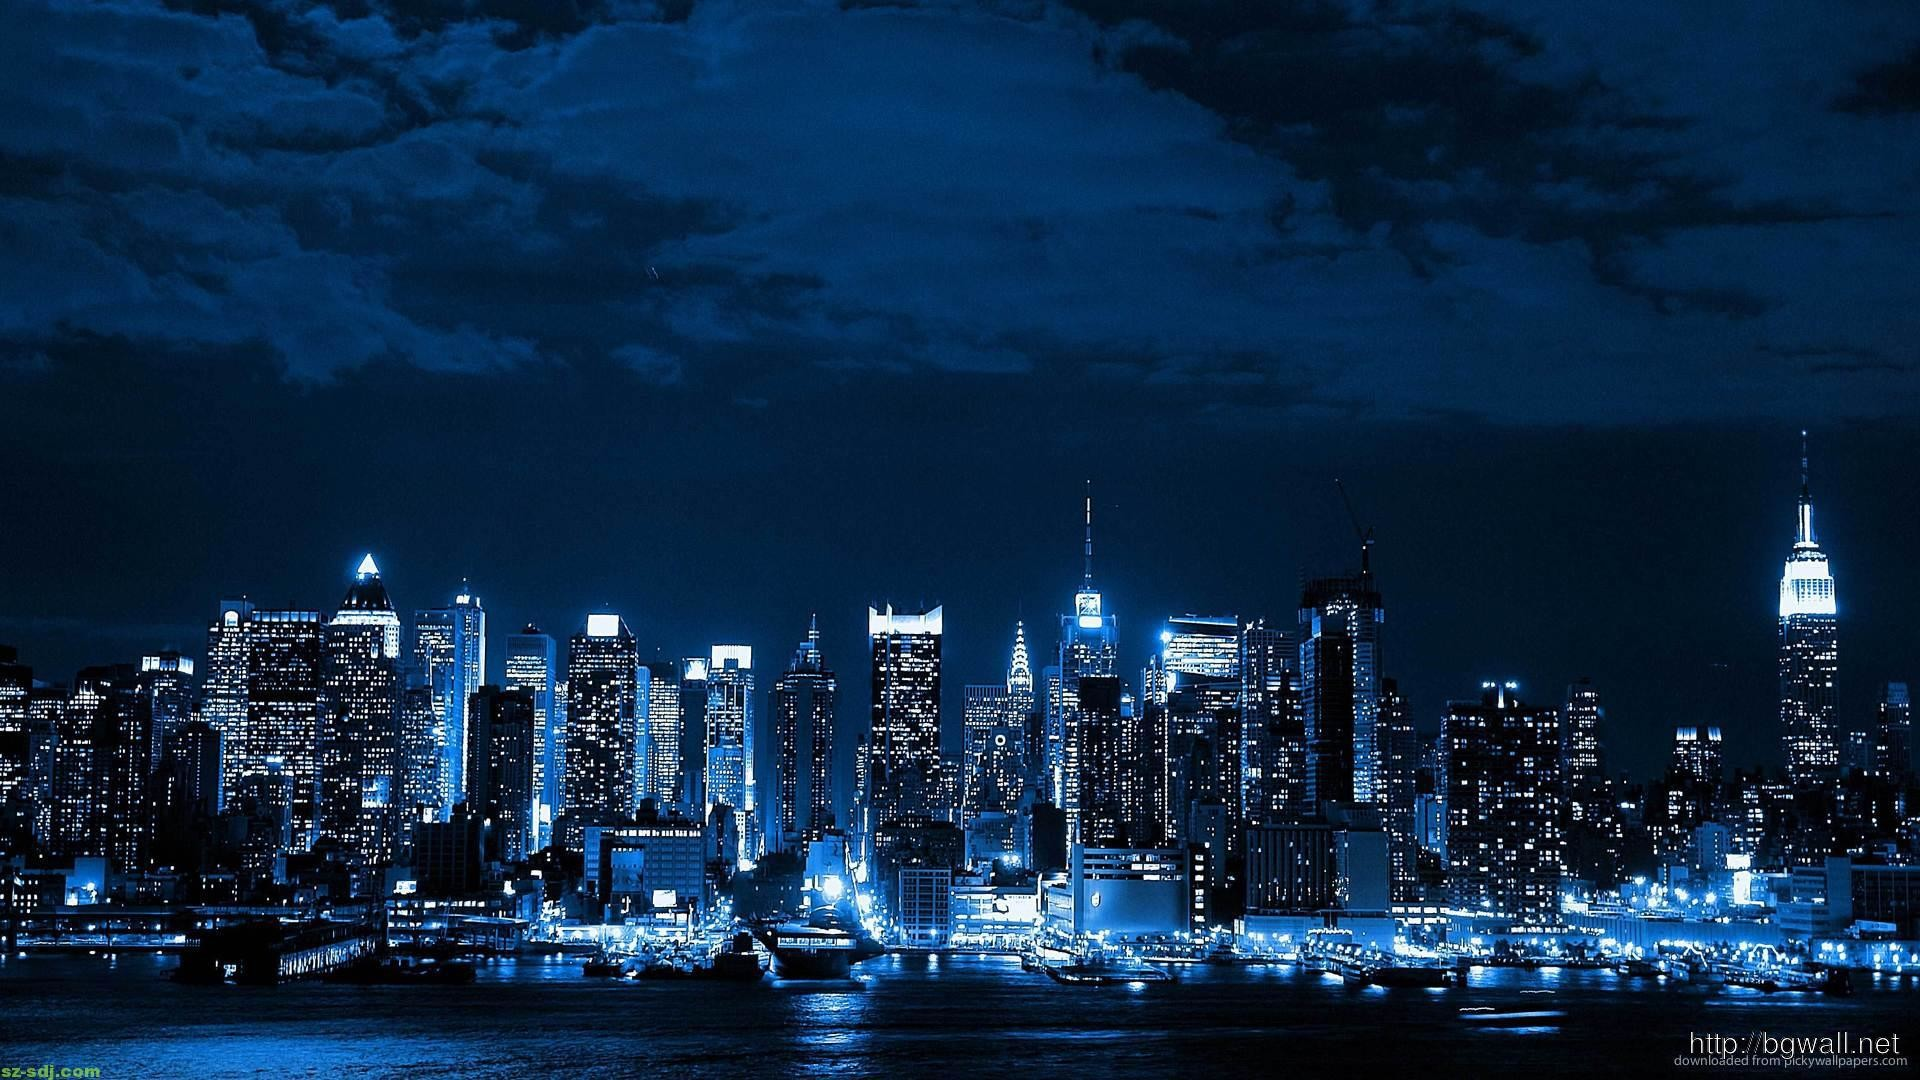 Night City Wallpaper 69 Images